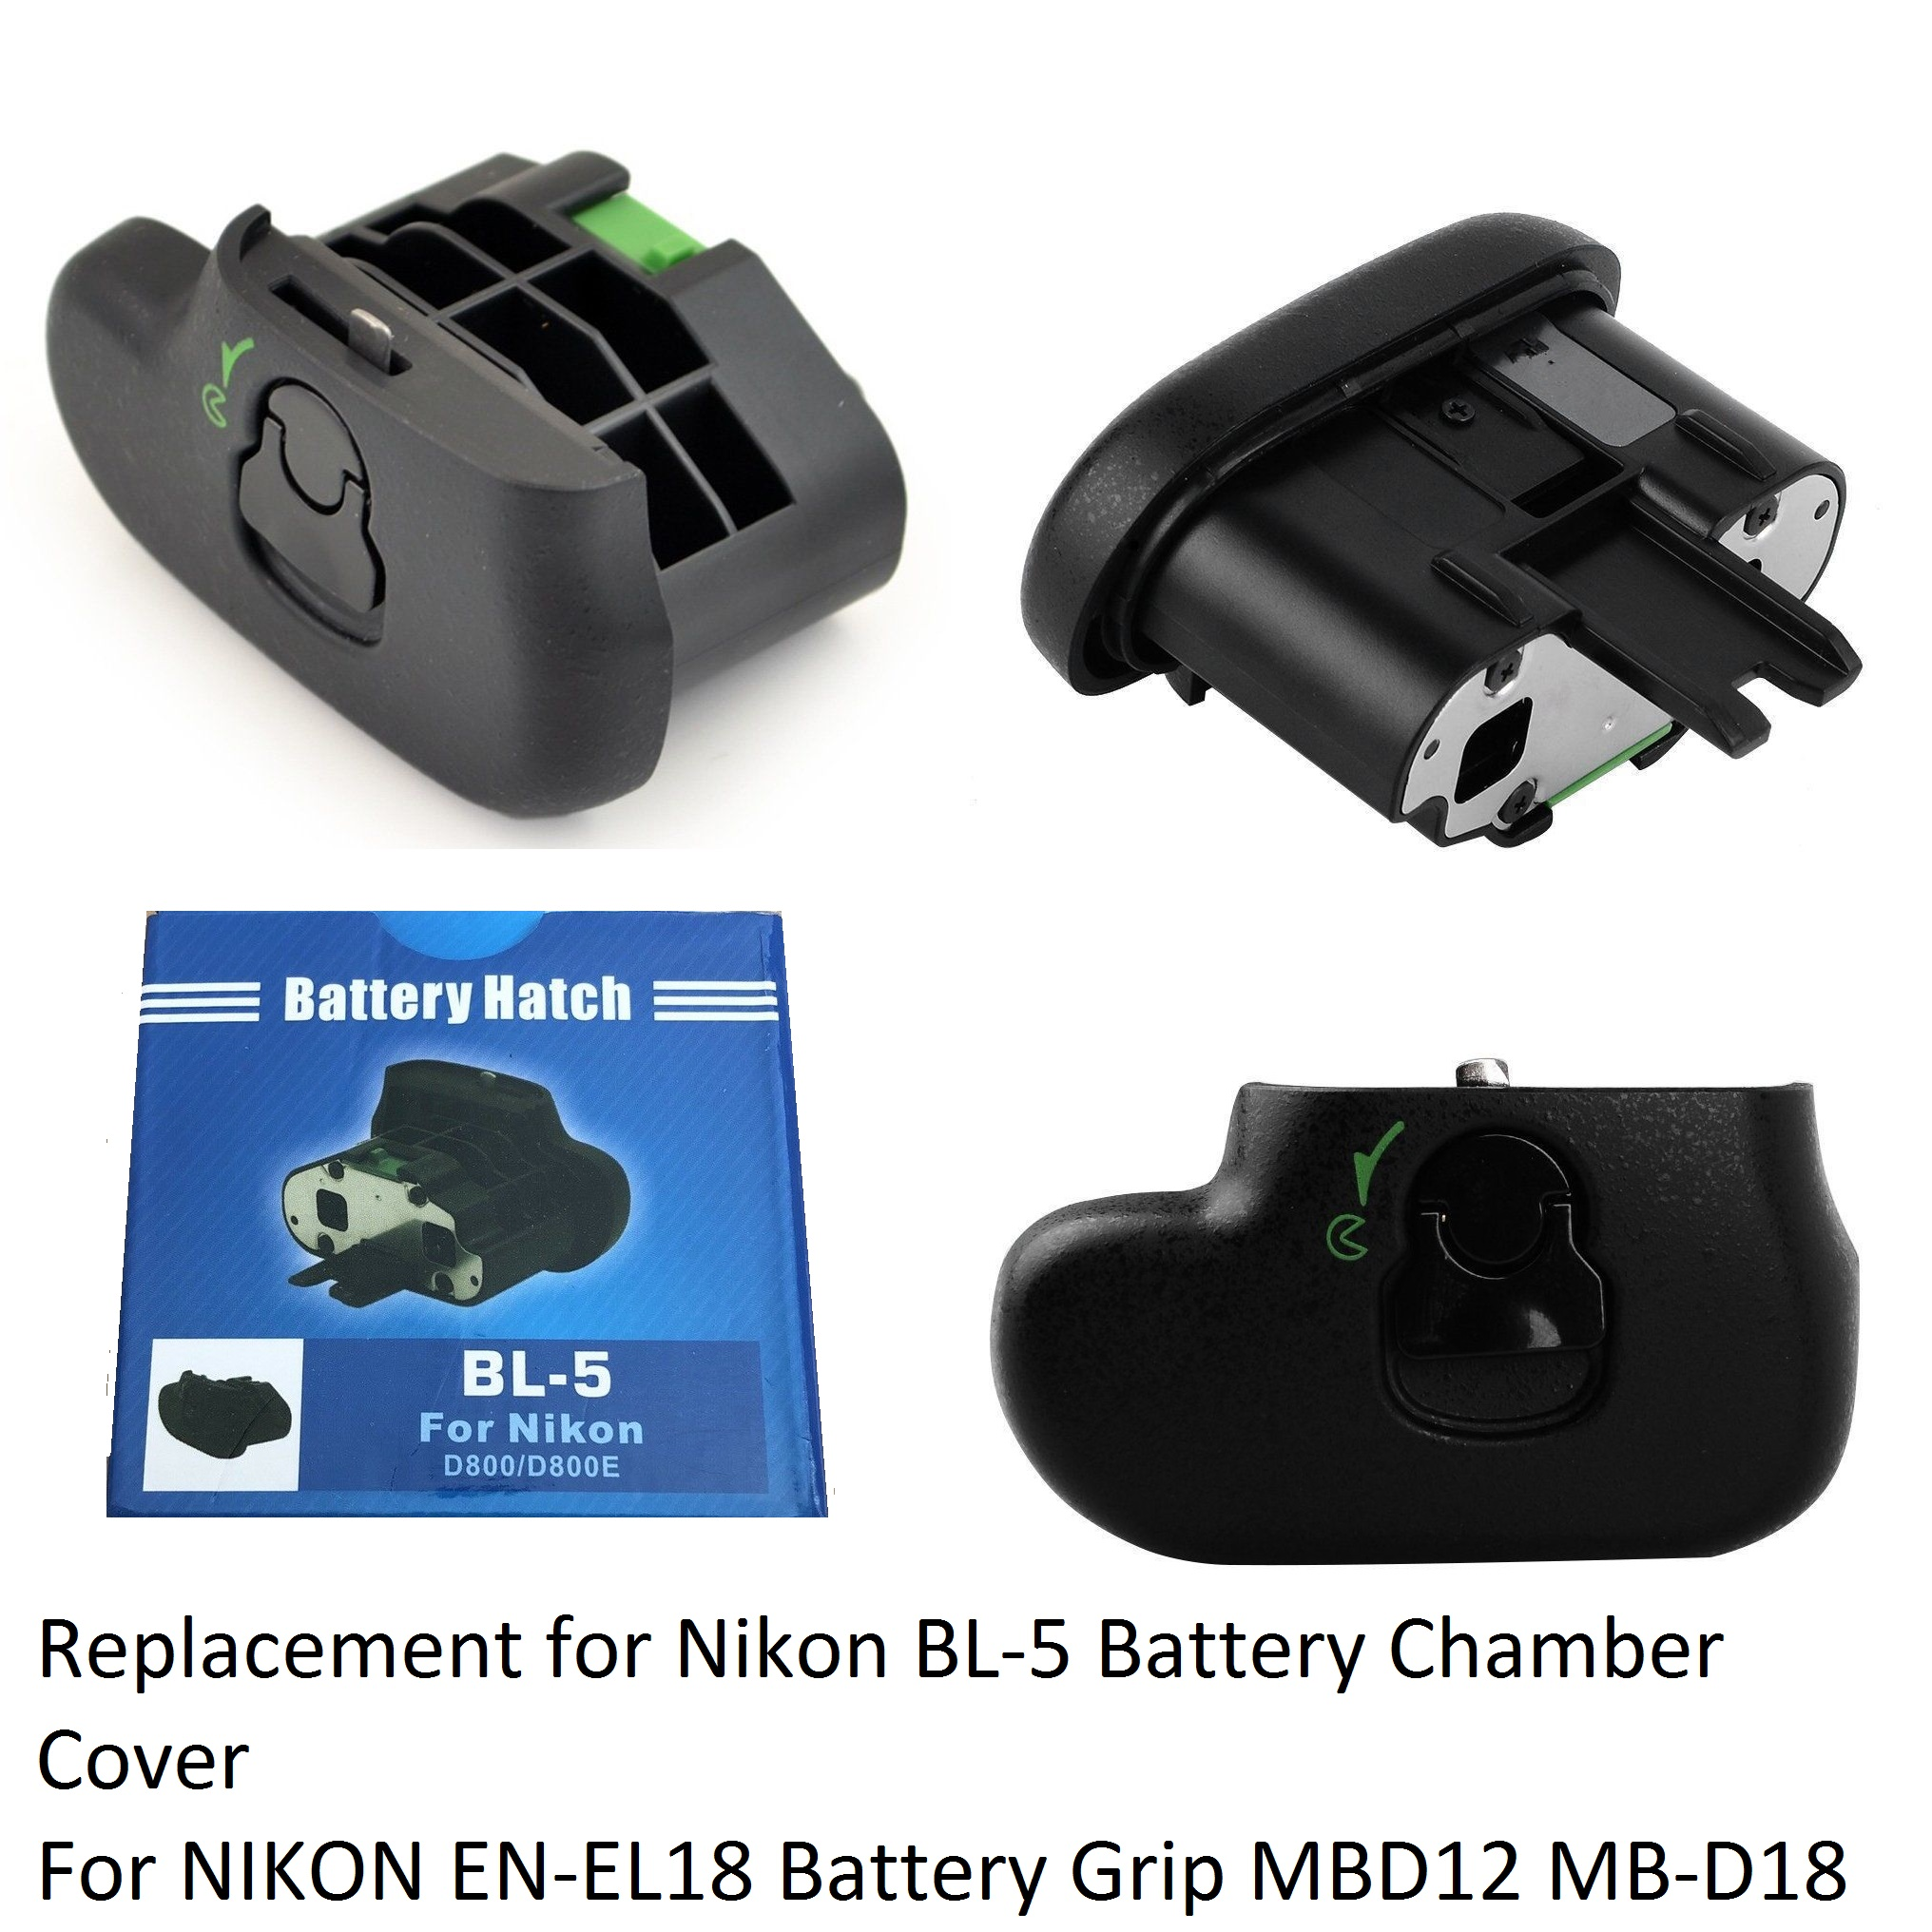 Replacement for Nikon BL-5 Battery Chamber Cover